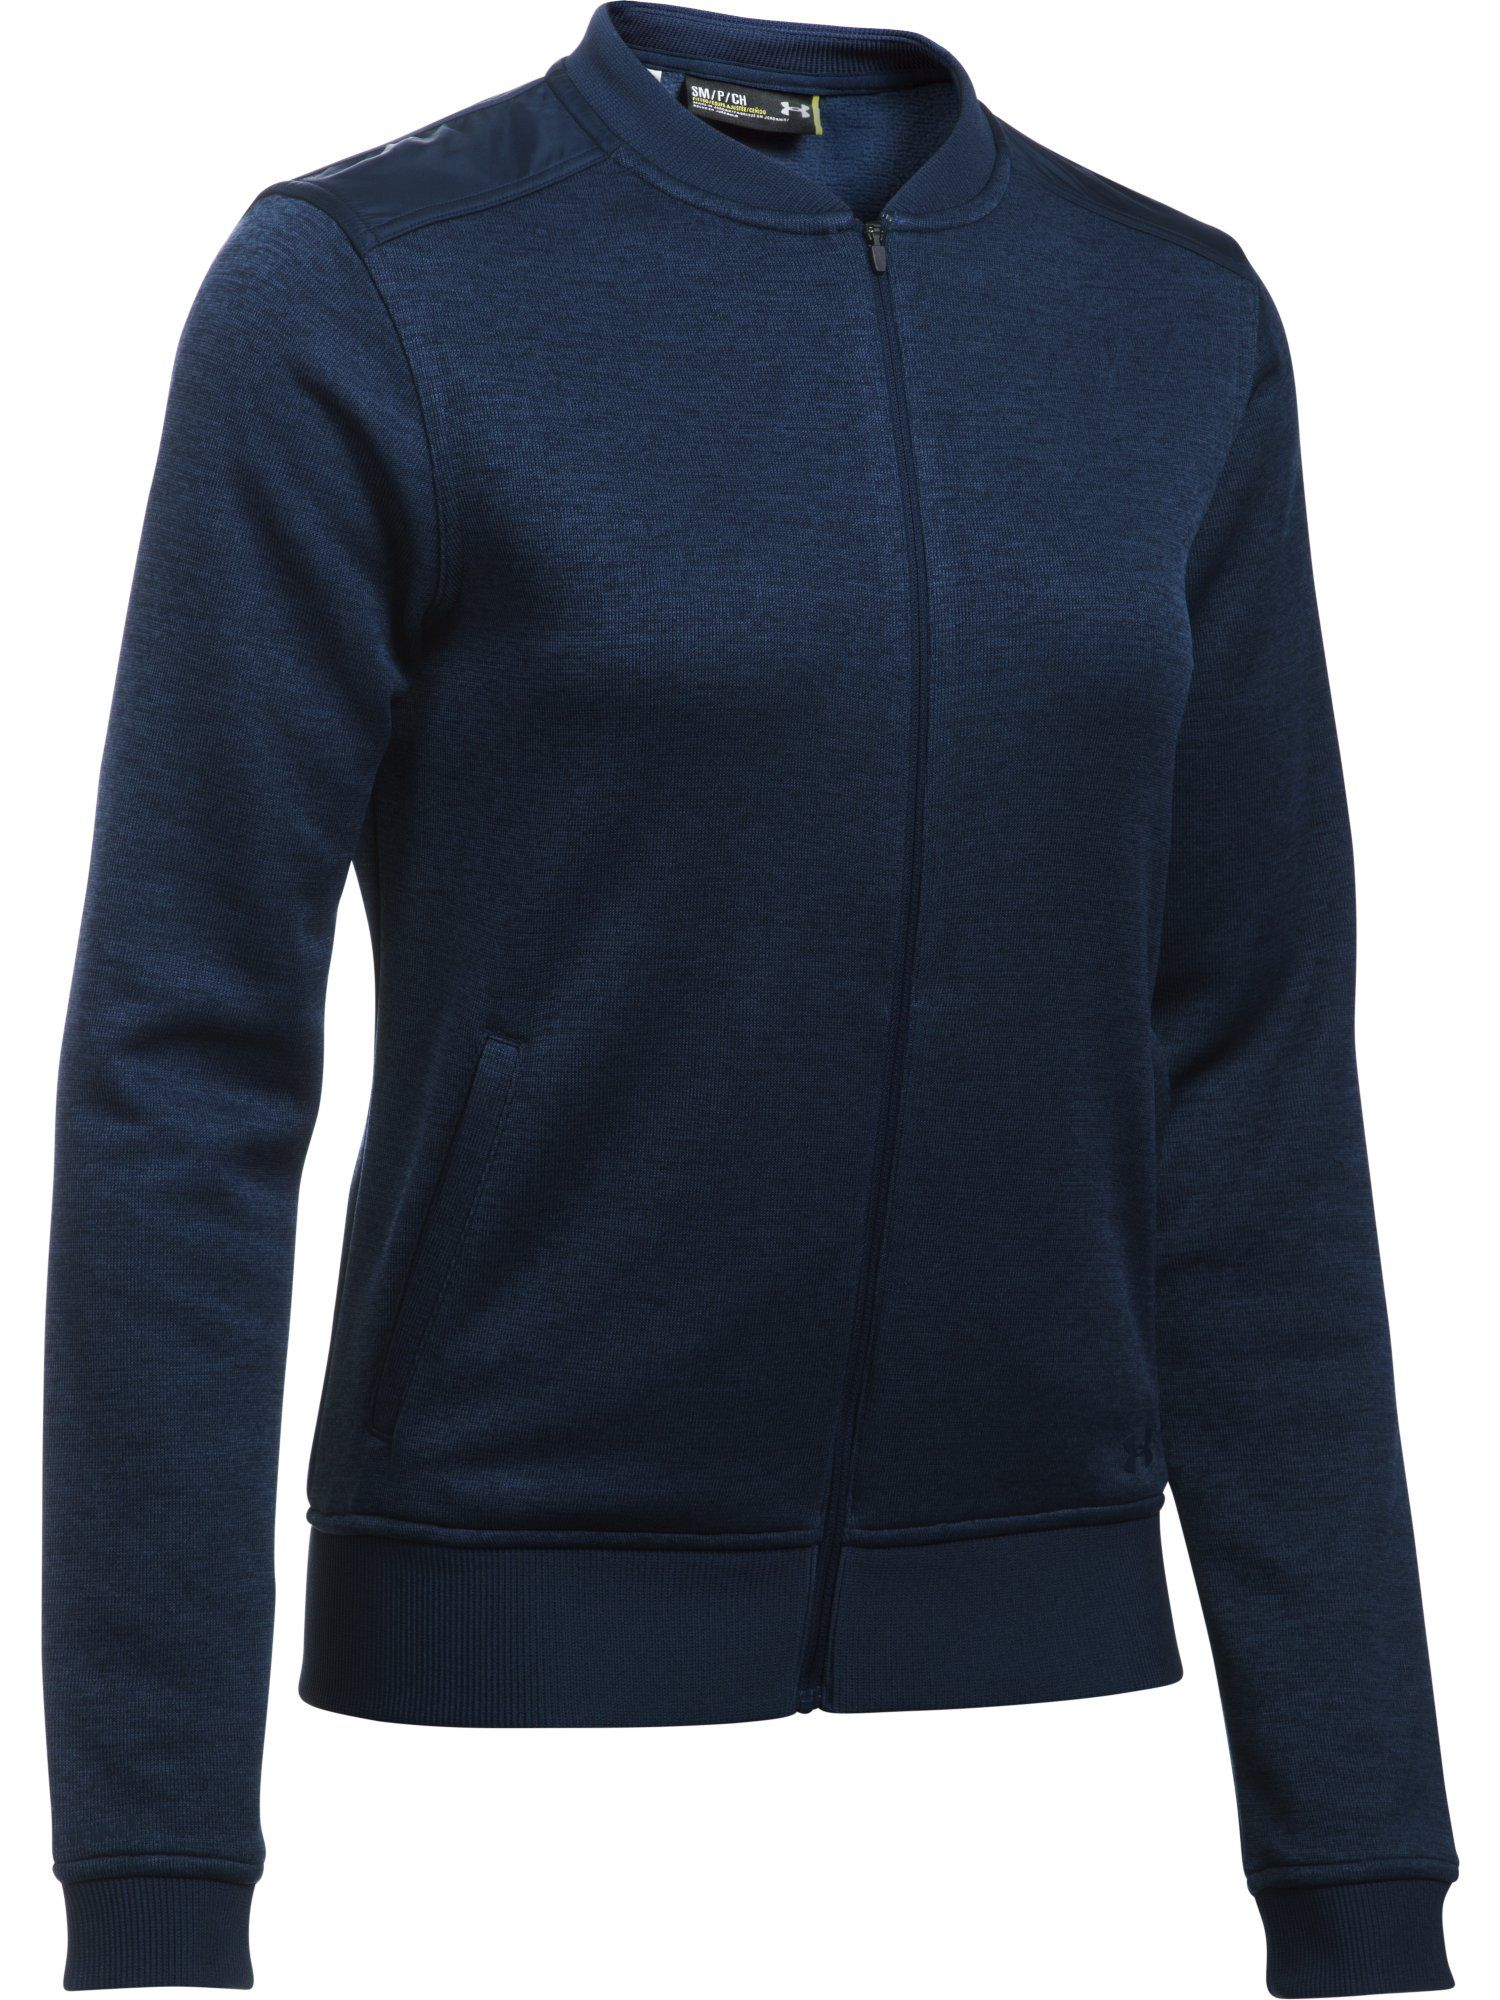 Under Armour Storm Sweaterfleece Jacket, Blue